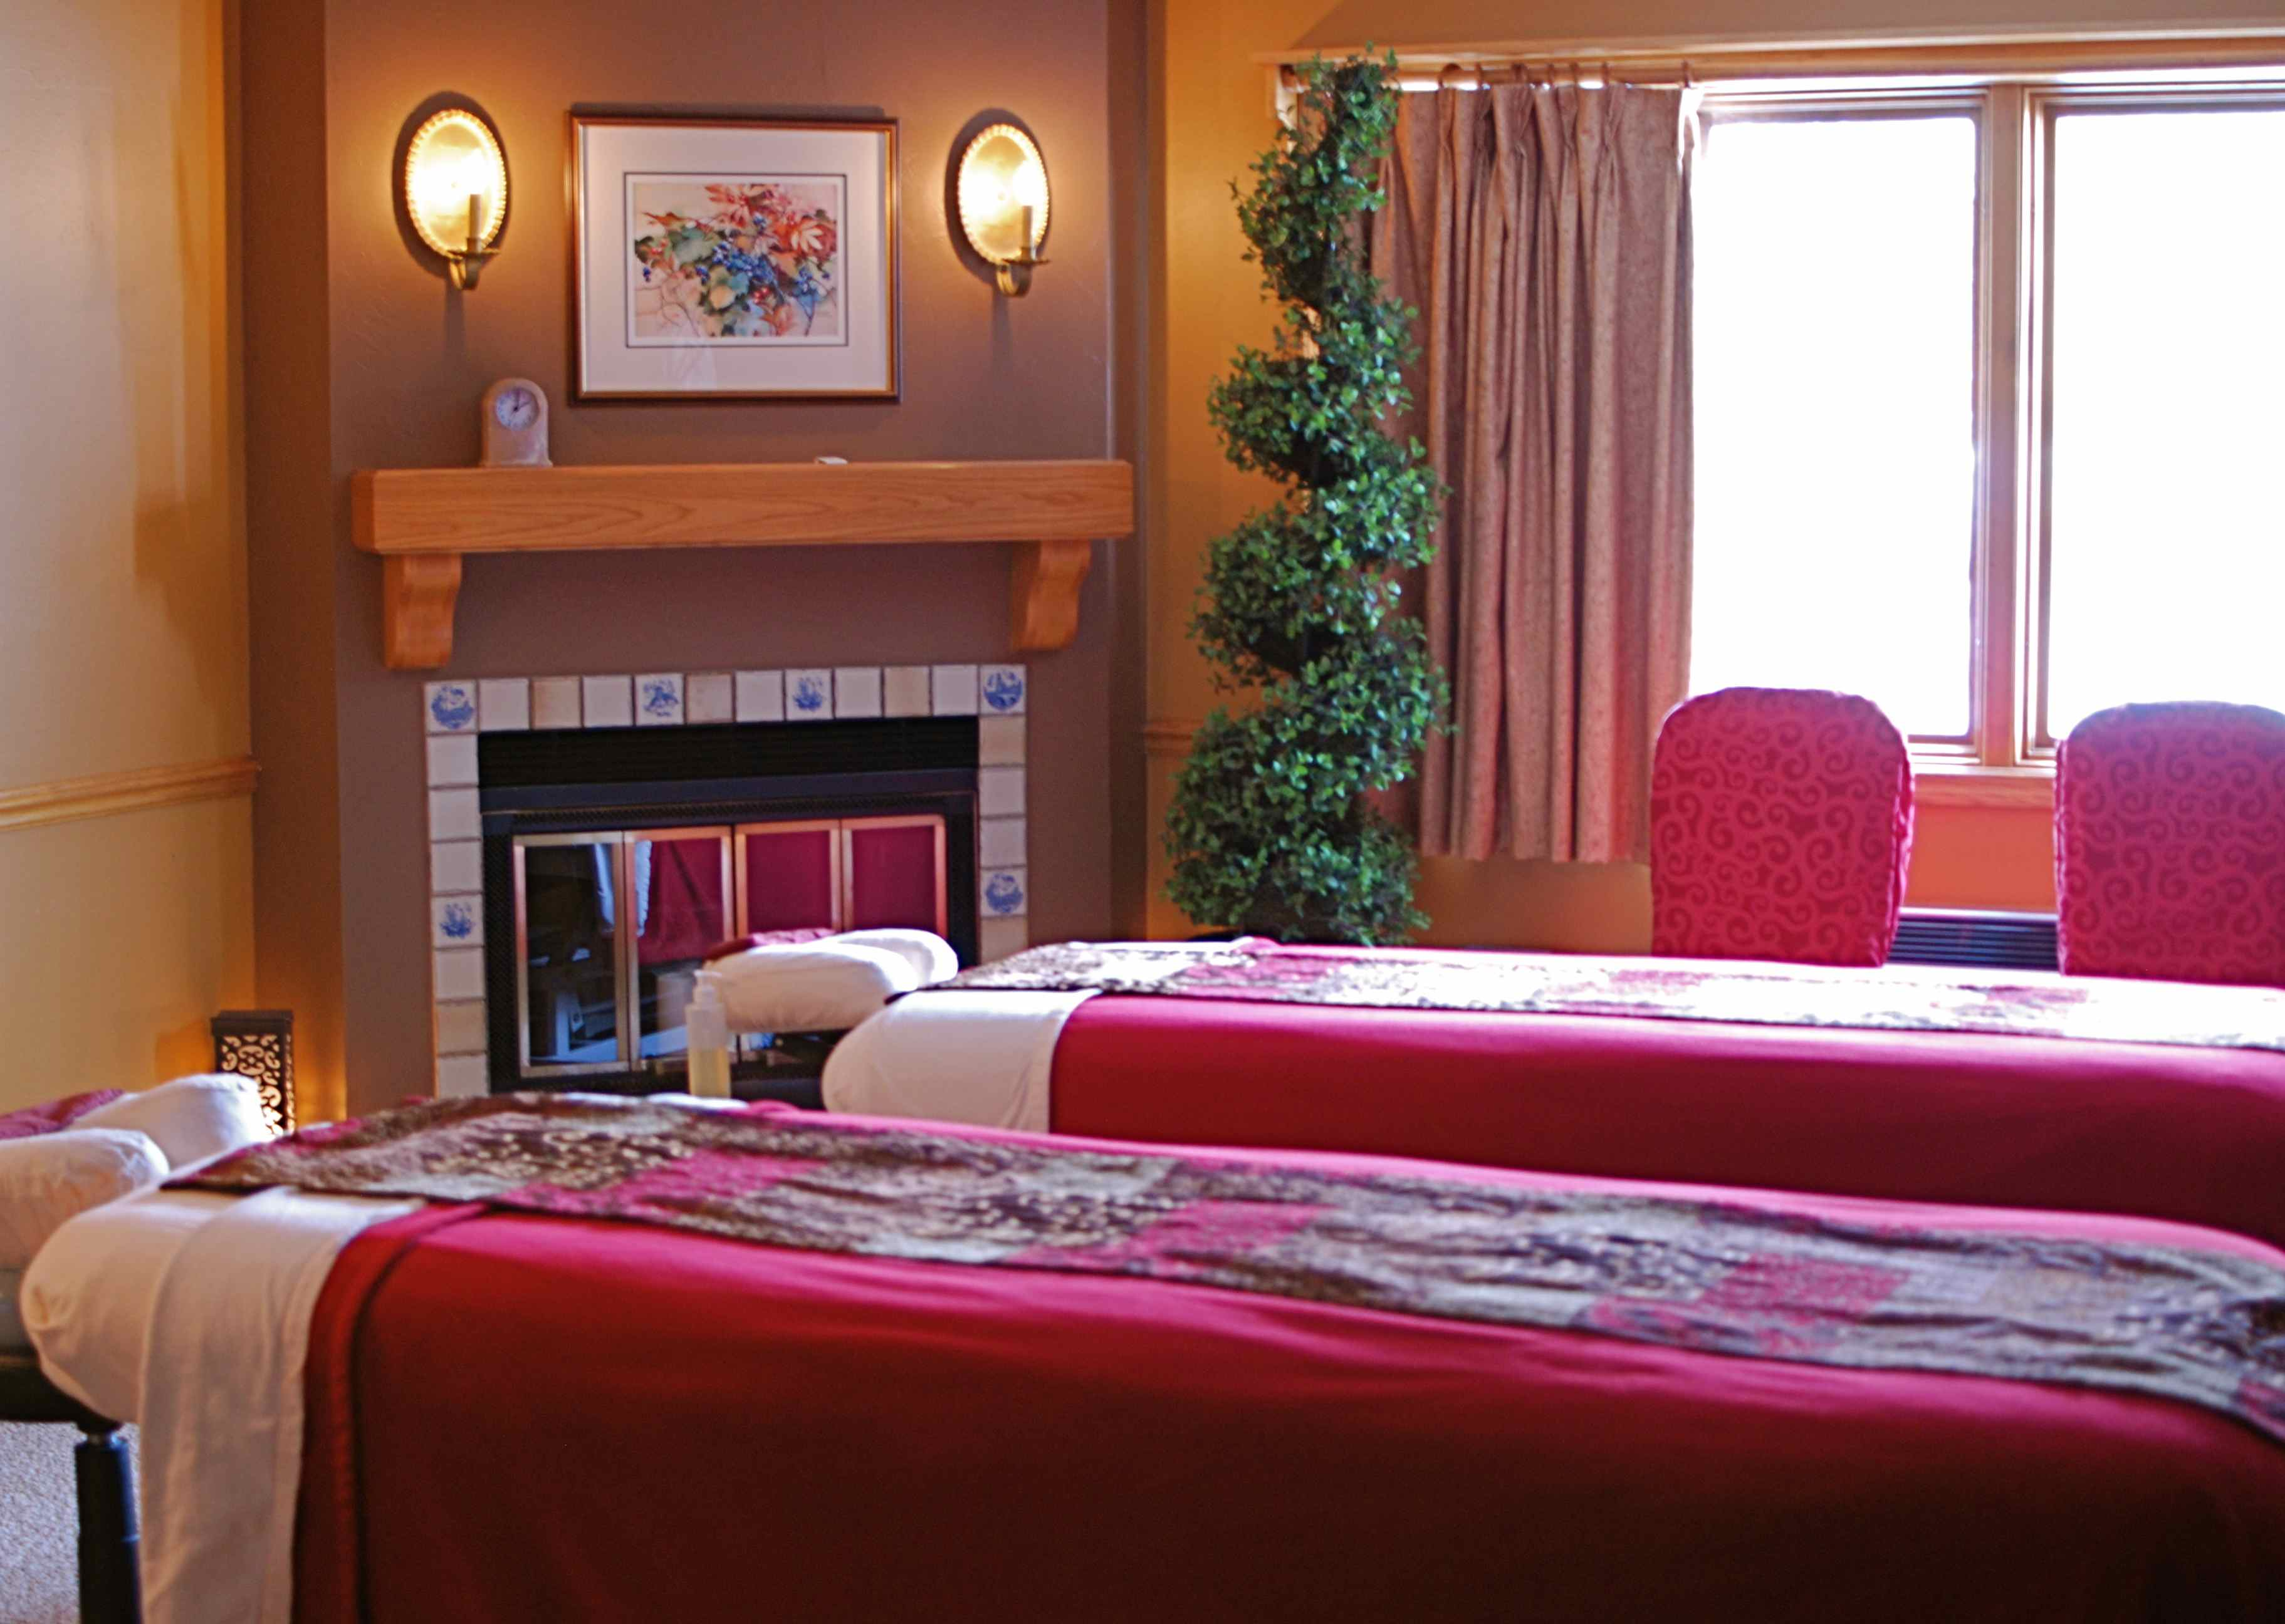 Lavender Spa Couples Room in Fish Creek Wi facility